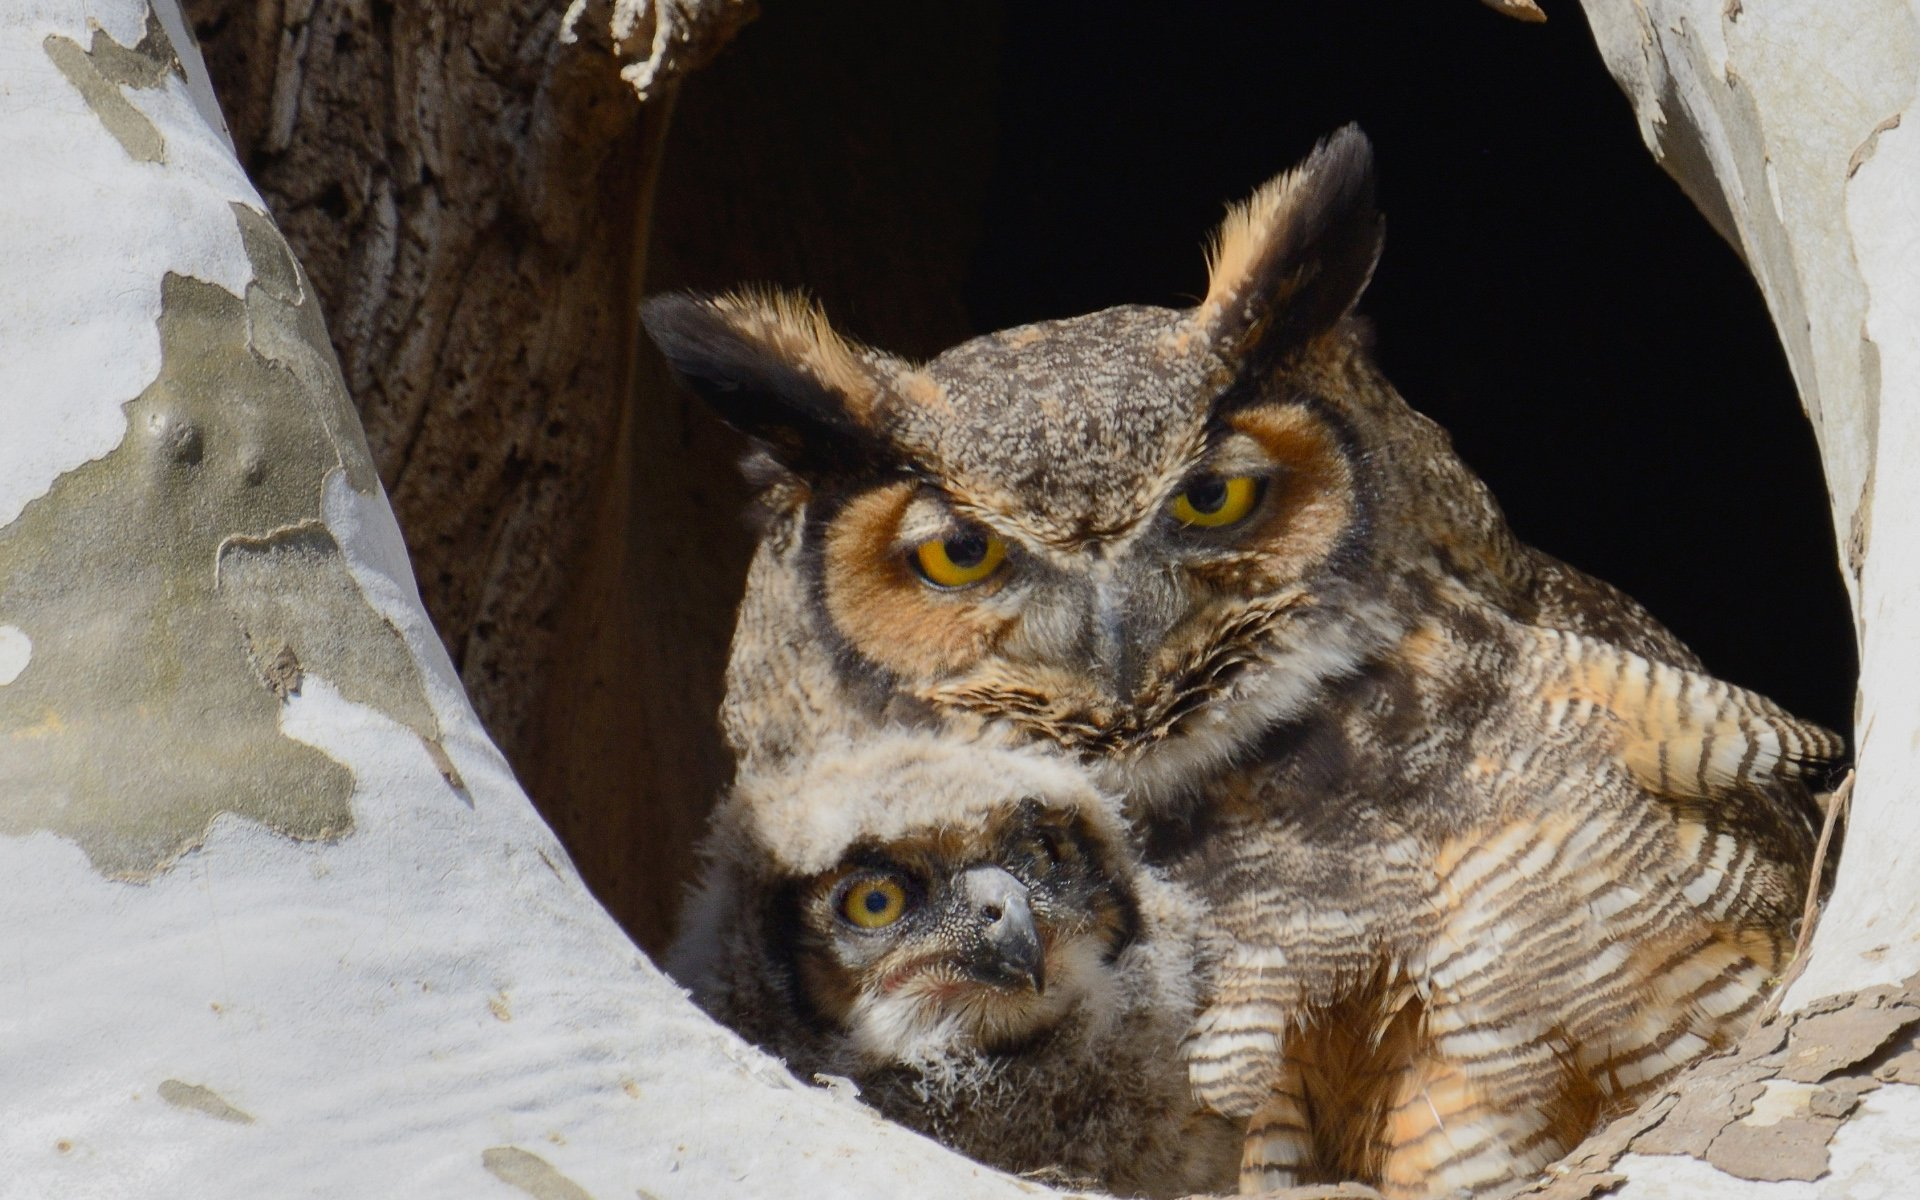 Mother Owl and Baby Perched in Hole in Tree